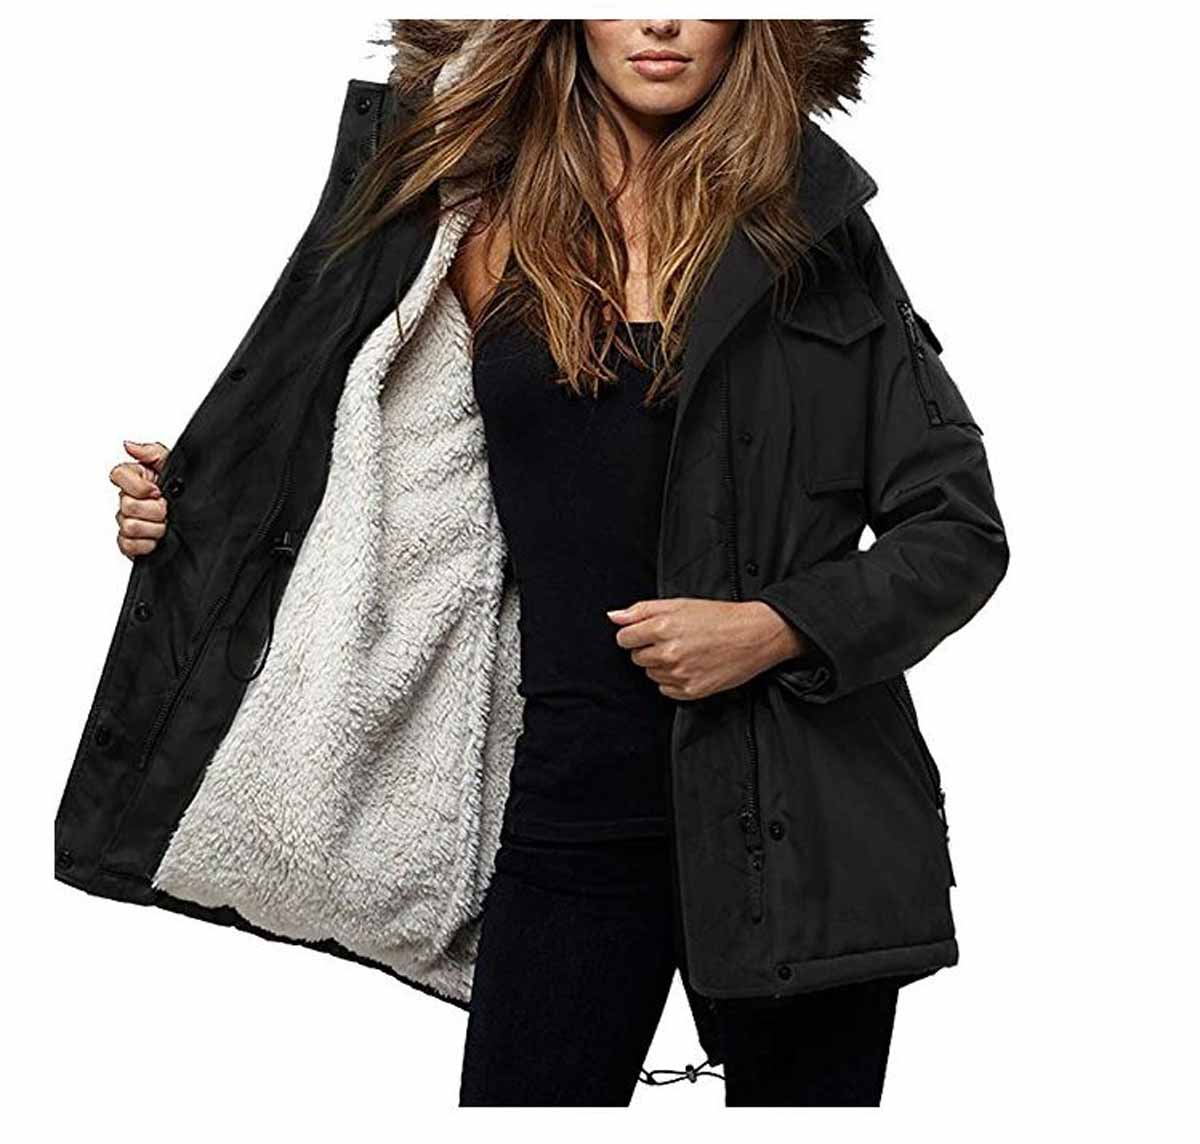 S13 New York Womens Sherpa Lined Ultra Tech Field Parka Coat | eBay